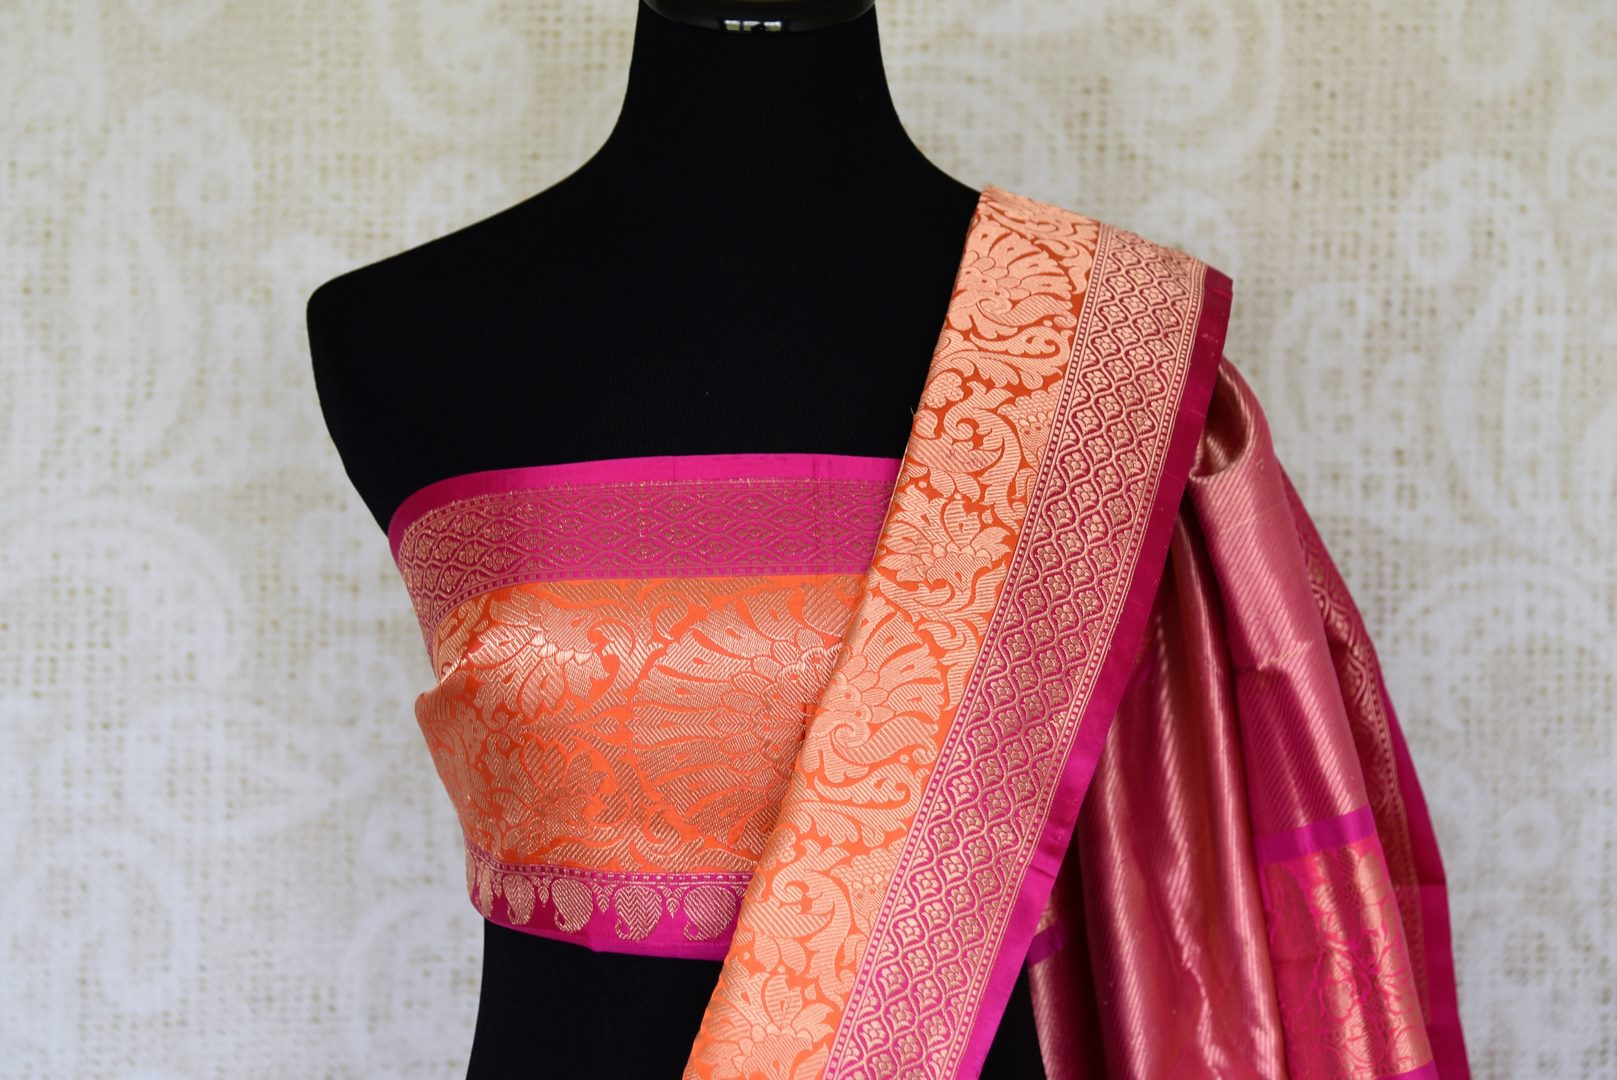 Adorn the flavour of South Indian beauty with our meticulously crafted pink banarsi silk sari. The stunning combination of pink and orange will leave you mesmerized. Style it with a designer matching blouse. Shop designer silk sari, kanjeevaram silk saree, ikkat sari online or visit Pure Elegance store in the USA. -blouse pallu